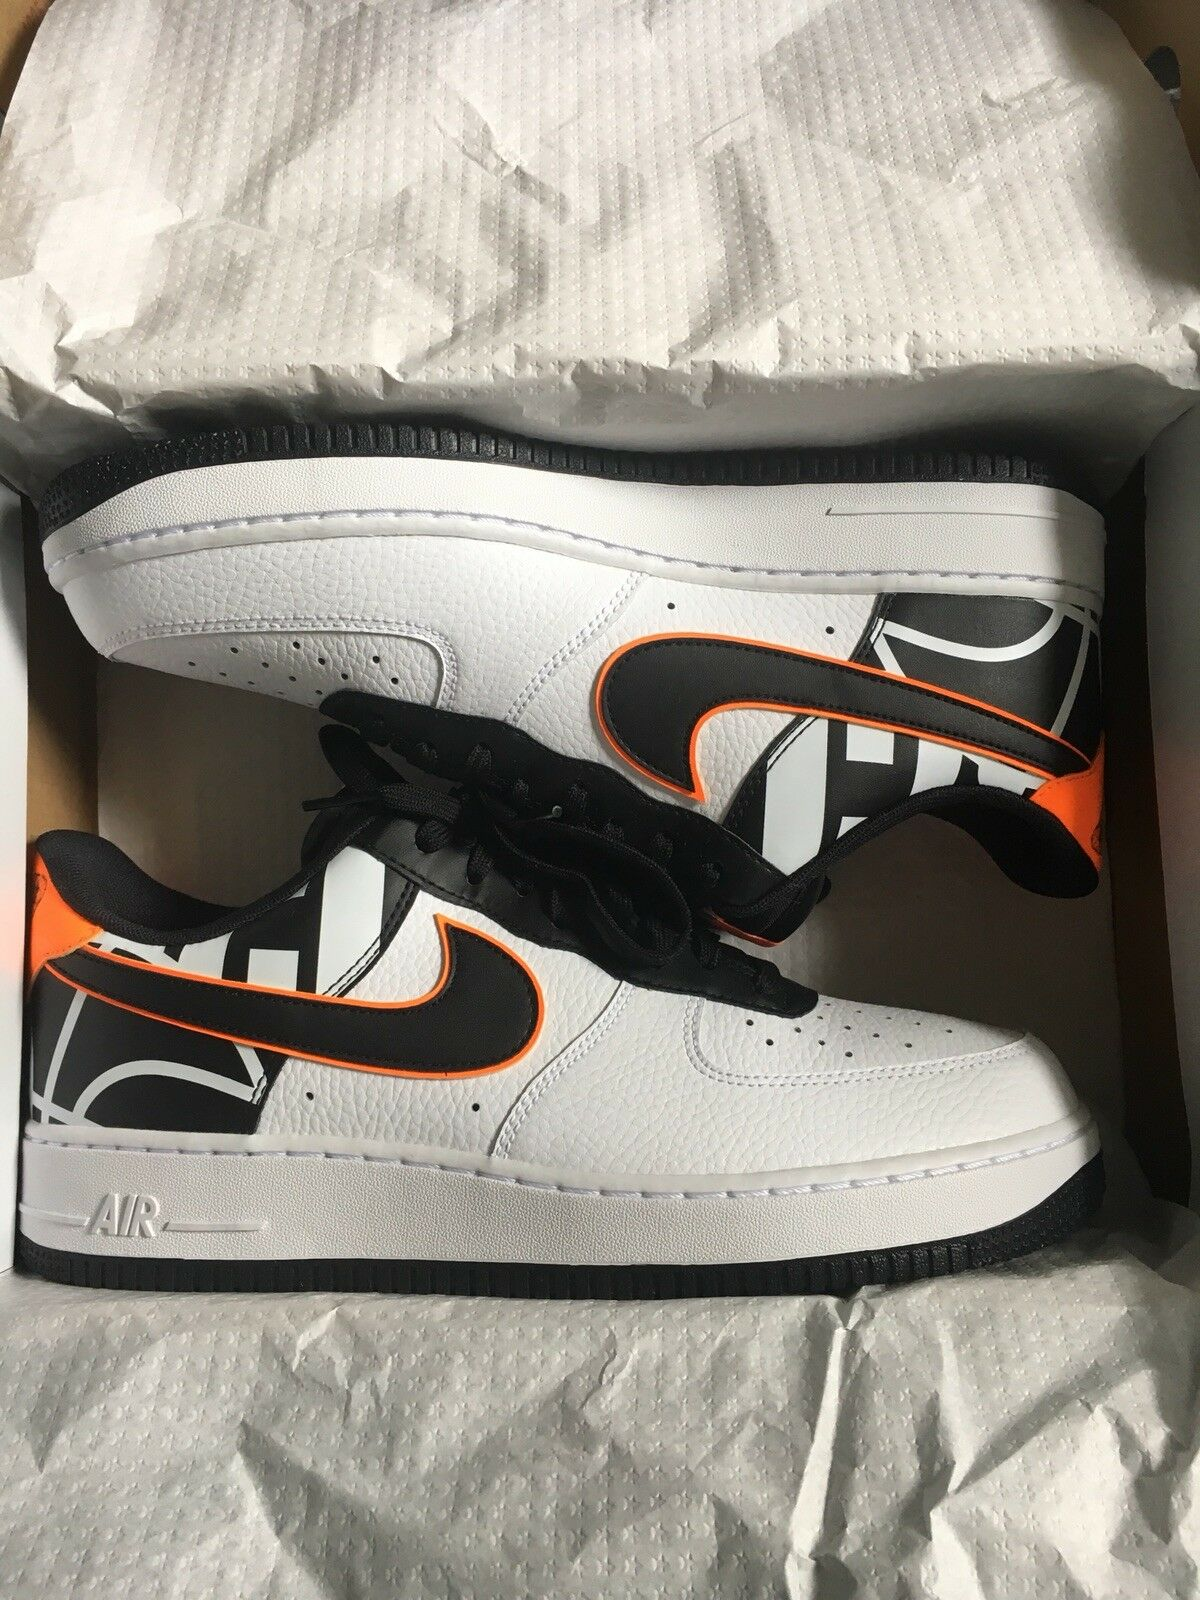 Nike air force 1 low 07 lv8 823511 104 White Black Orange Comfortable The most popular shoes for men and women